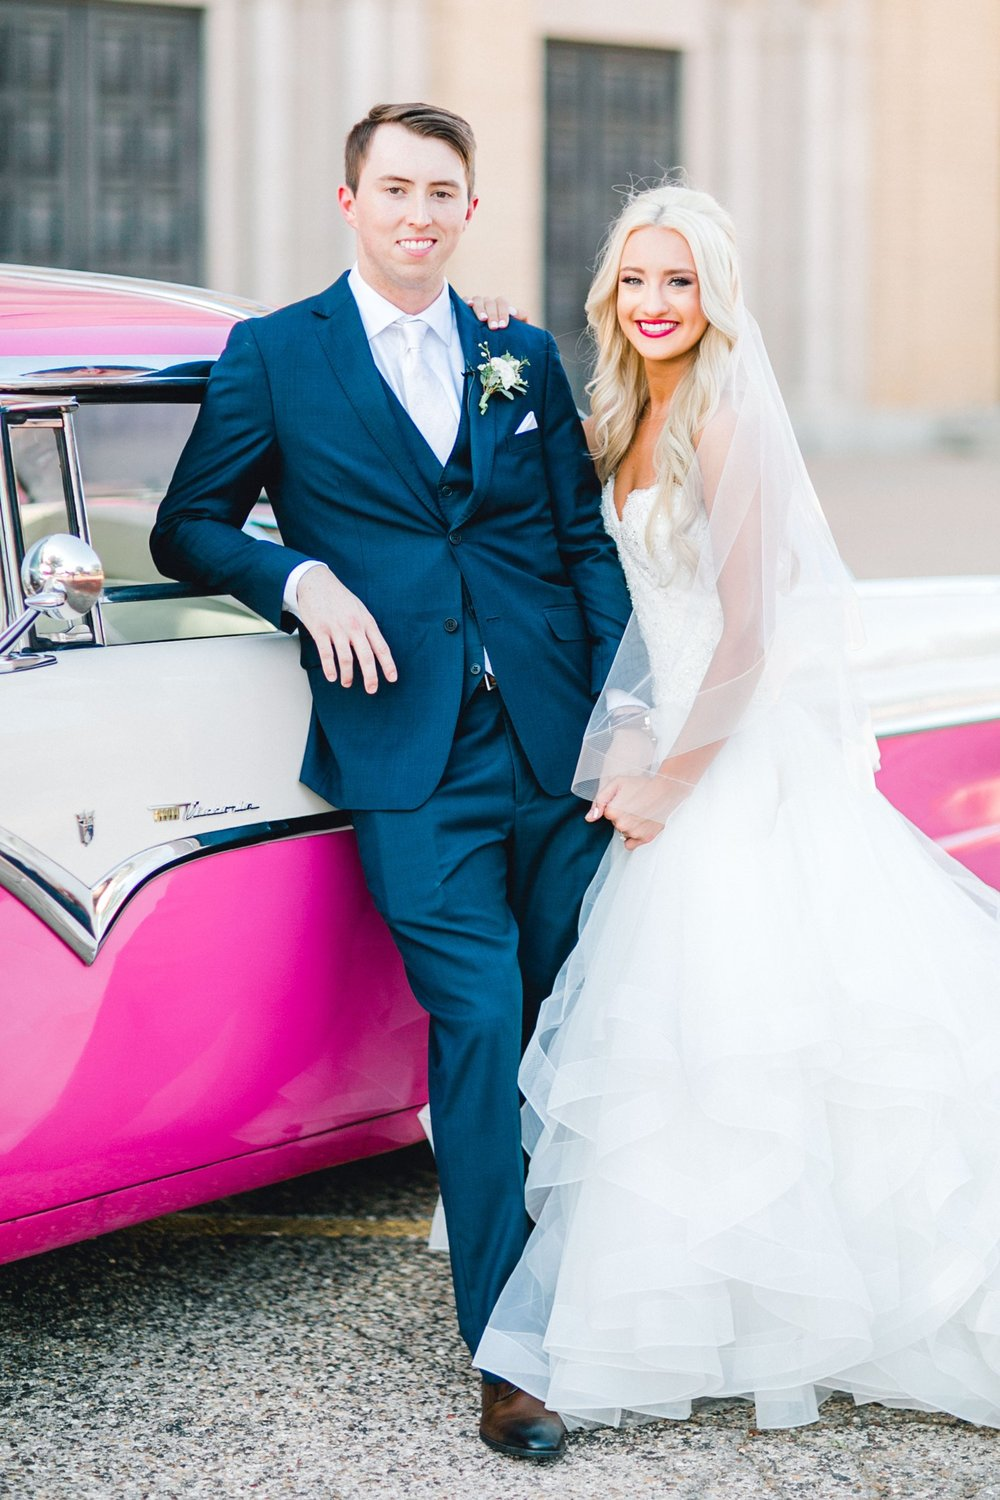 MADI_AND_WILL_STEPHENS_ALLEEJ_LUBBOCK_PHOTOGRAPHER_TEXAS+TECH+FRAZIER_ALUMNI0129.jpg